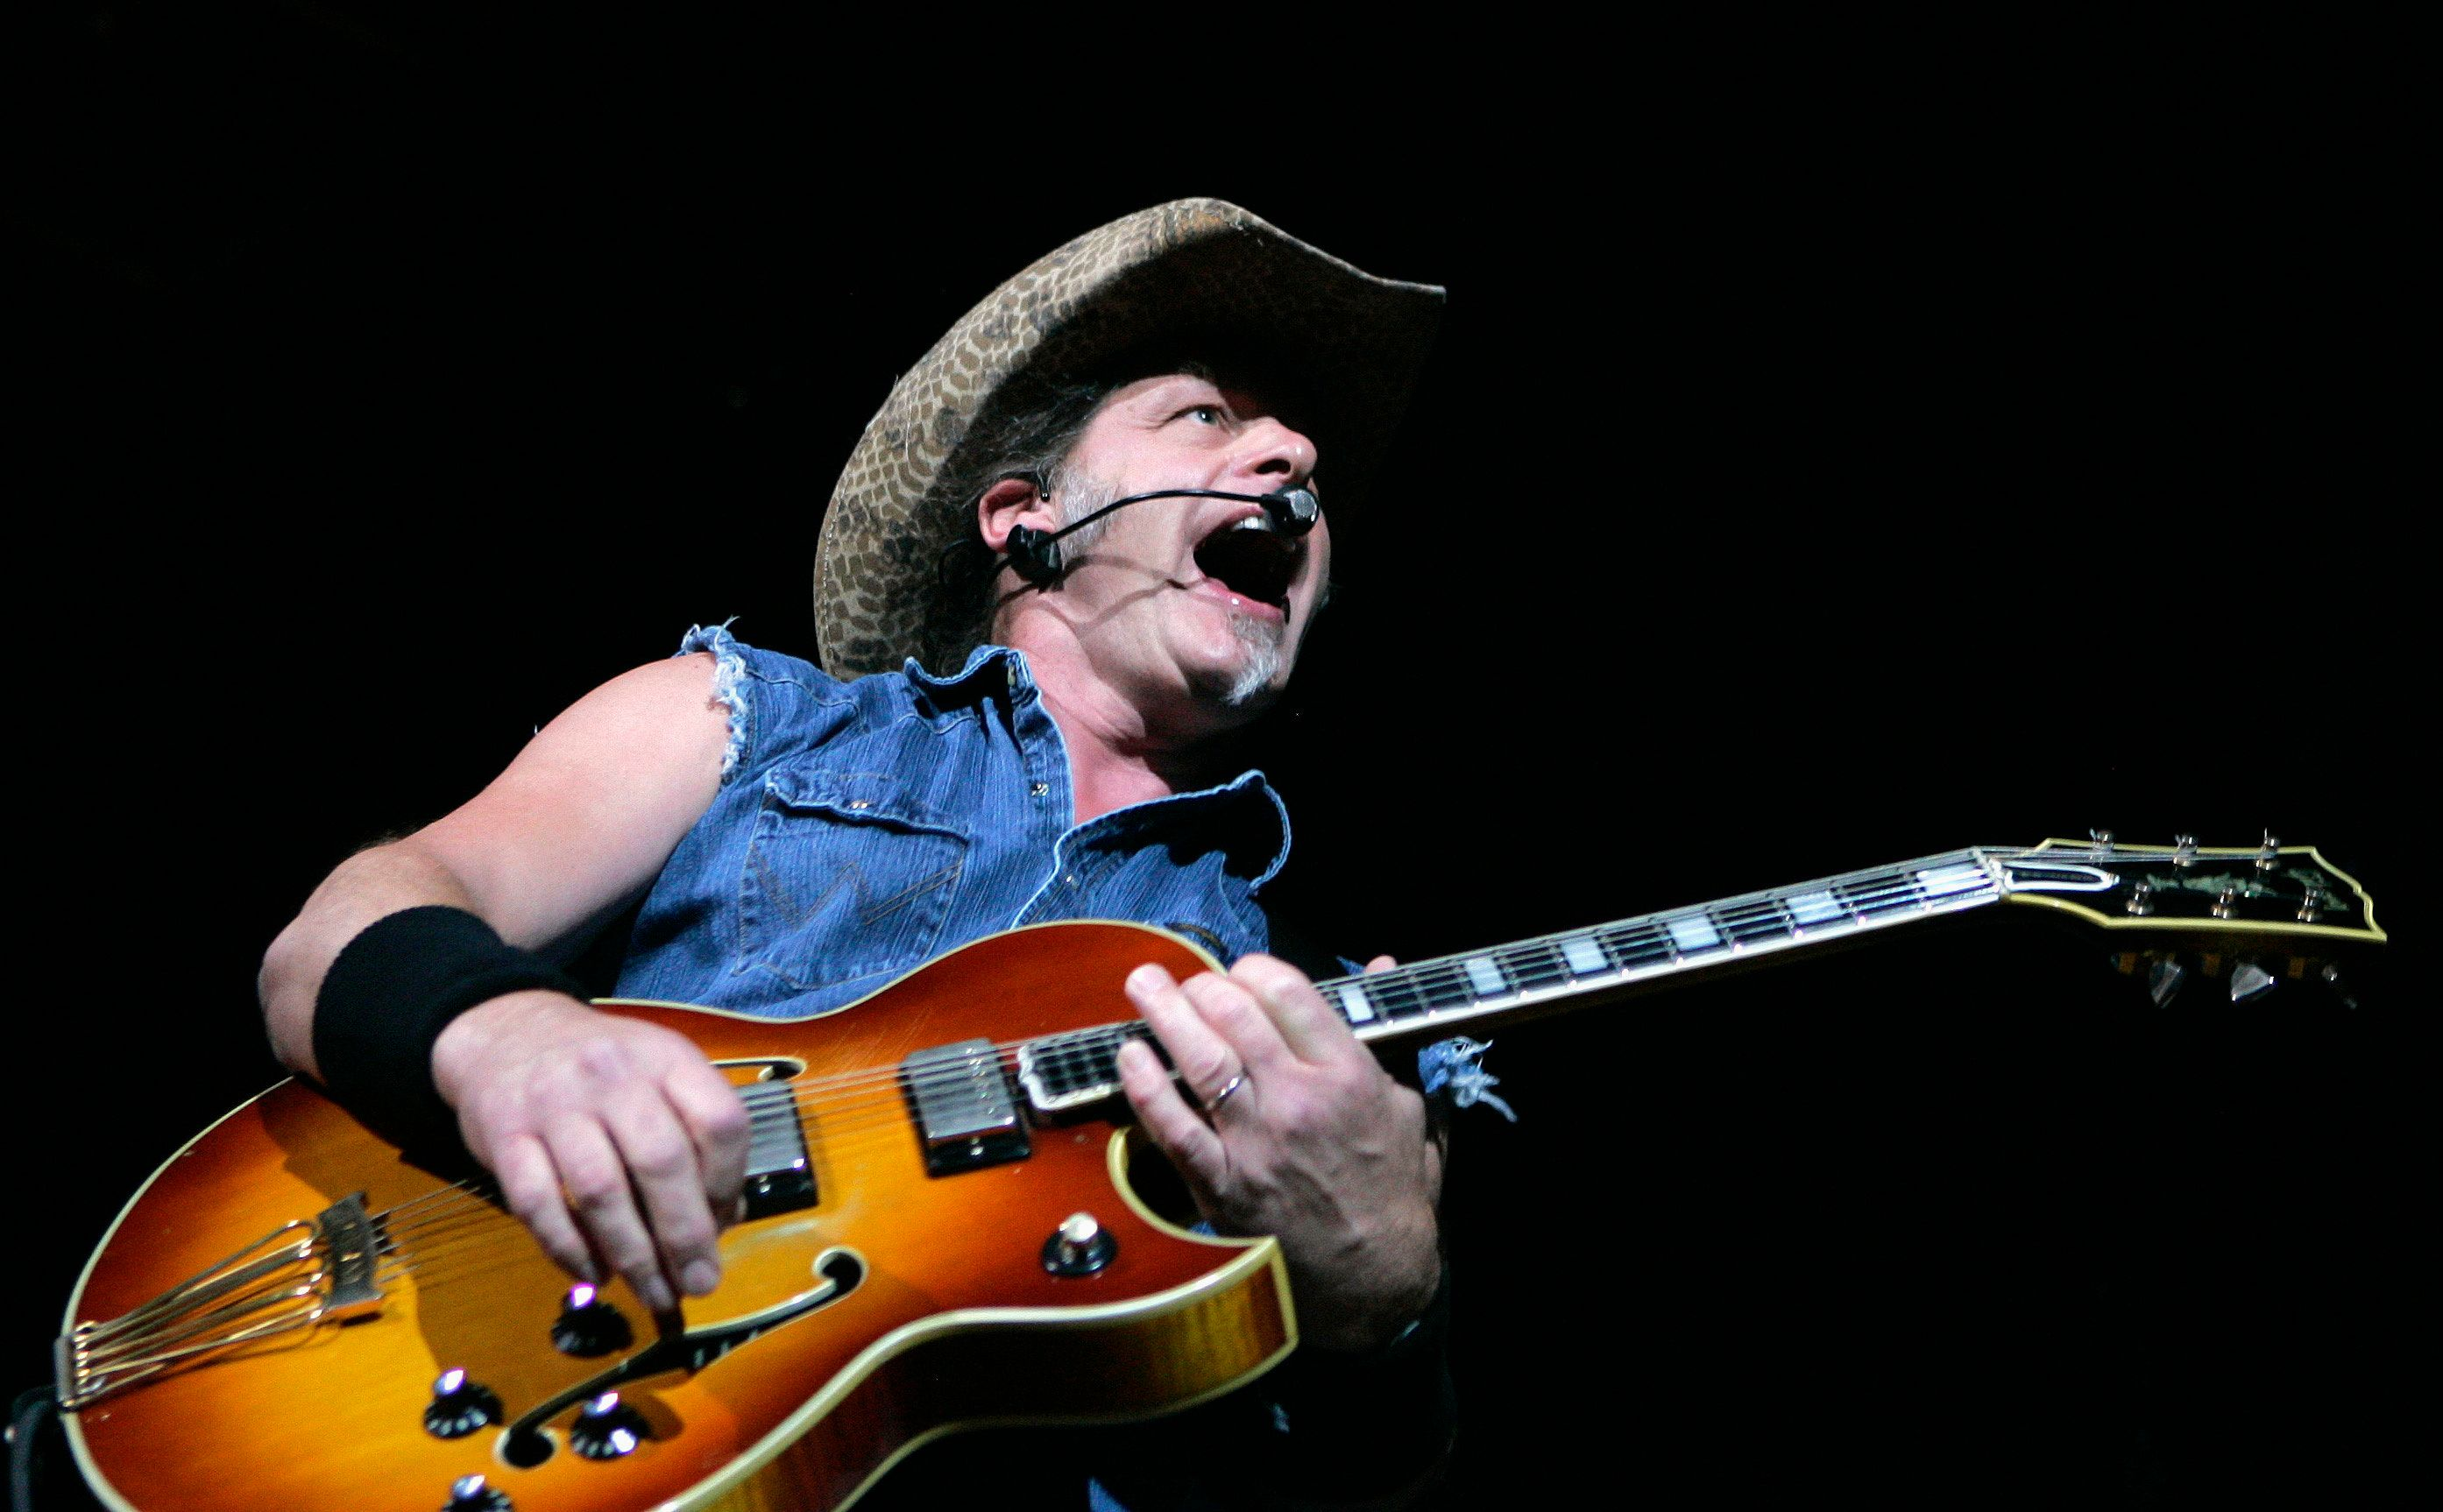 """Ted Nugent performs at a concert at the House of Blues at the Mandalay Bay Resort in Las Vegas, Nevada in this file image from August 11, 2007. Republican candidate Mitt Romney's campaign called for civility on Tuesday after aging rock star Nugent made an apparent threat against President Barack Obama before an audience of U.S. gun lobbyists. Nugent told the National Rifle Association convention in St. Louis last week that """"If Barack Obama becomes the president in November again, I will either be dead or in jail by this time next year."""" REUTERS/Steve Marcus (UNITED STATES - Tags: ENTERTAINMENT SOCIETY PROFILE POLITICS)"""